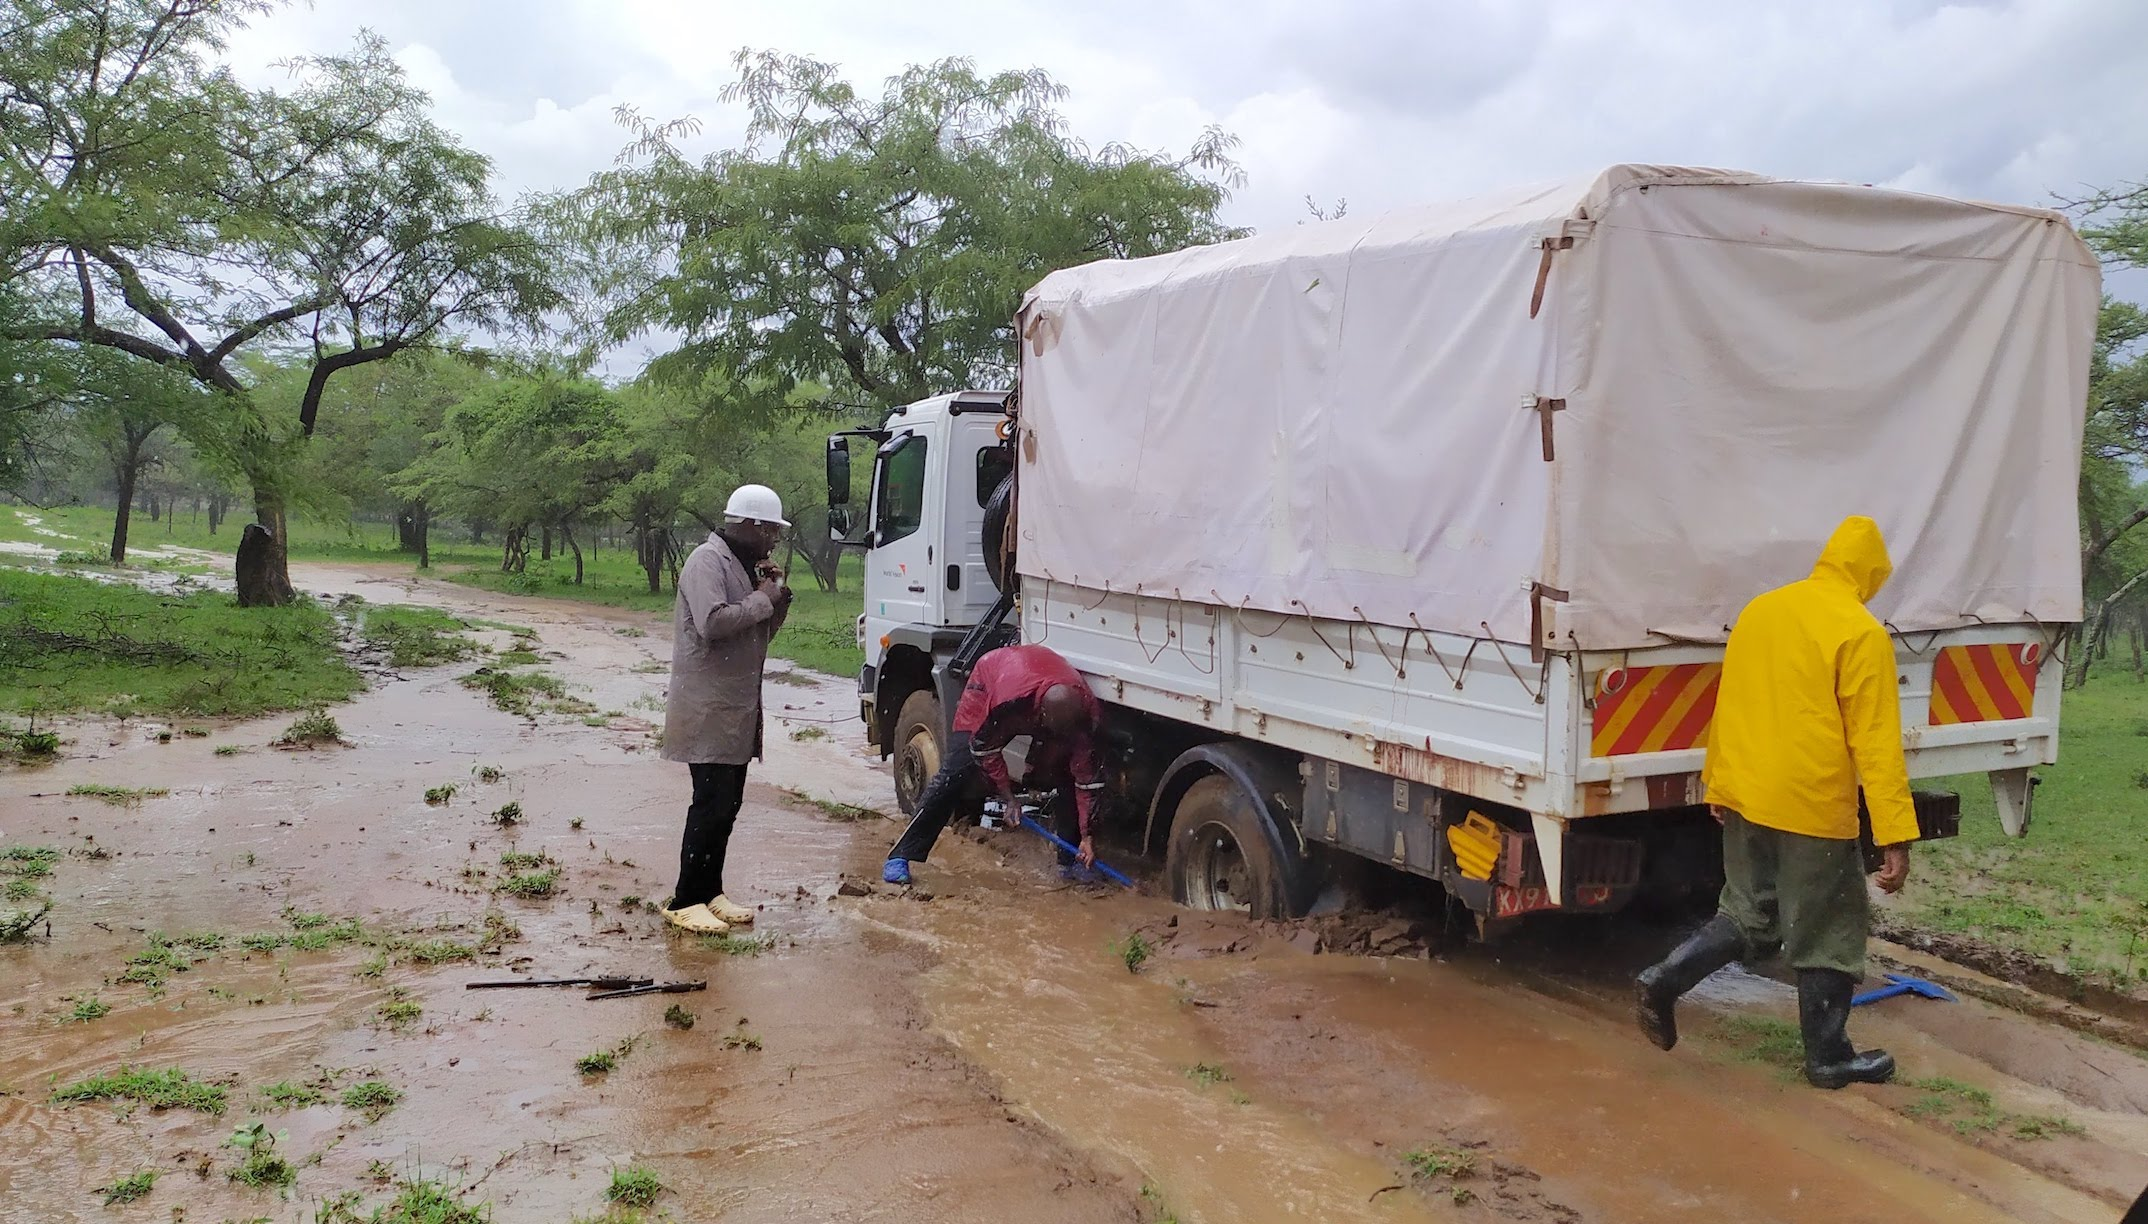 Heavy rainfall causes one of the trucks of the Kenya drilling to get stuck along the way.